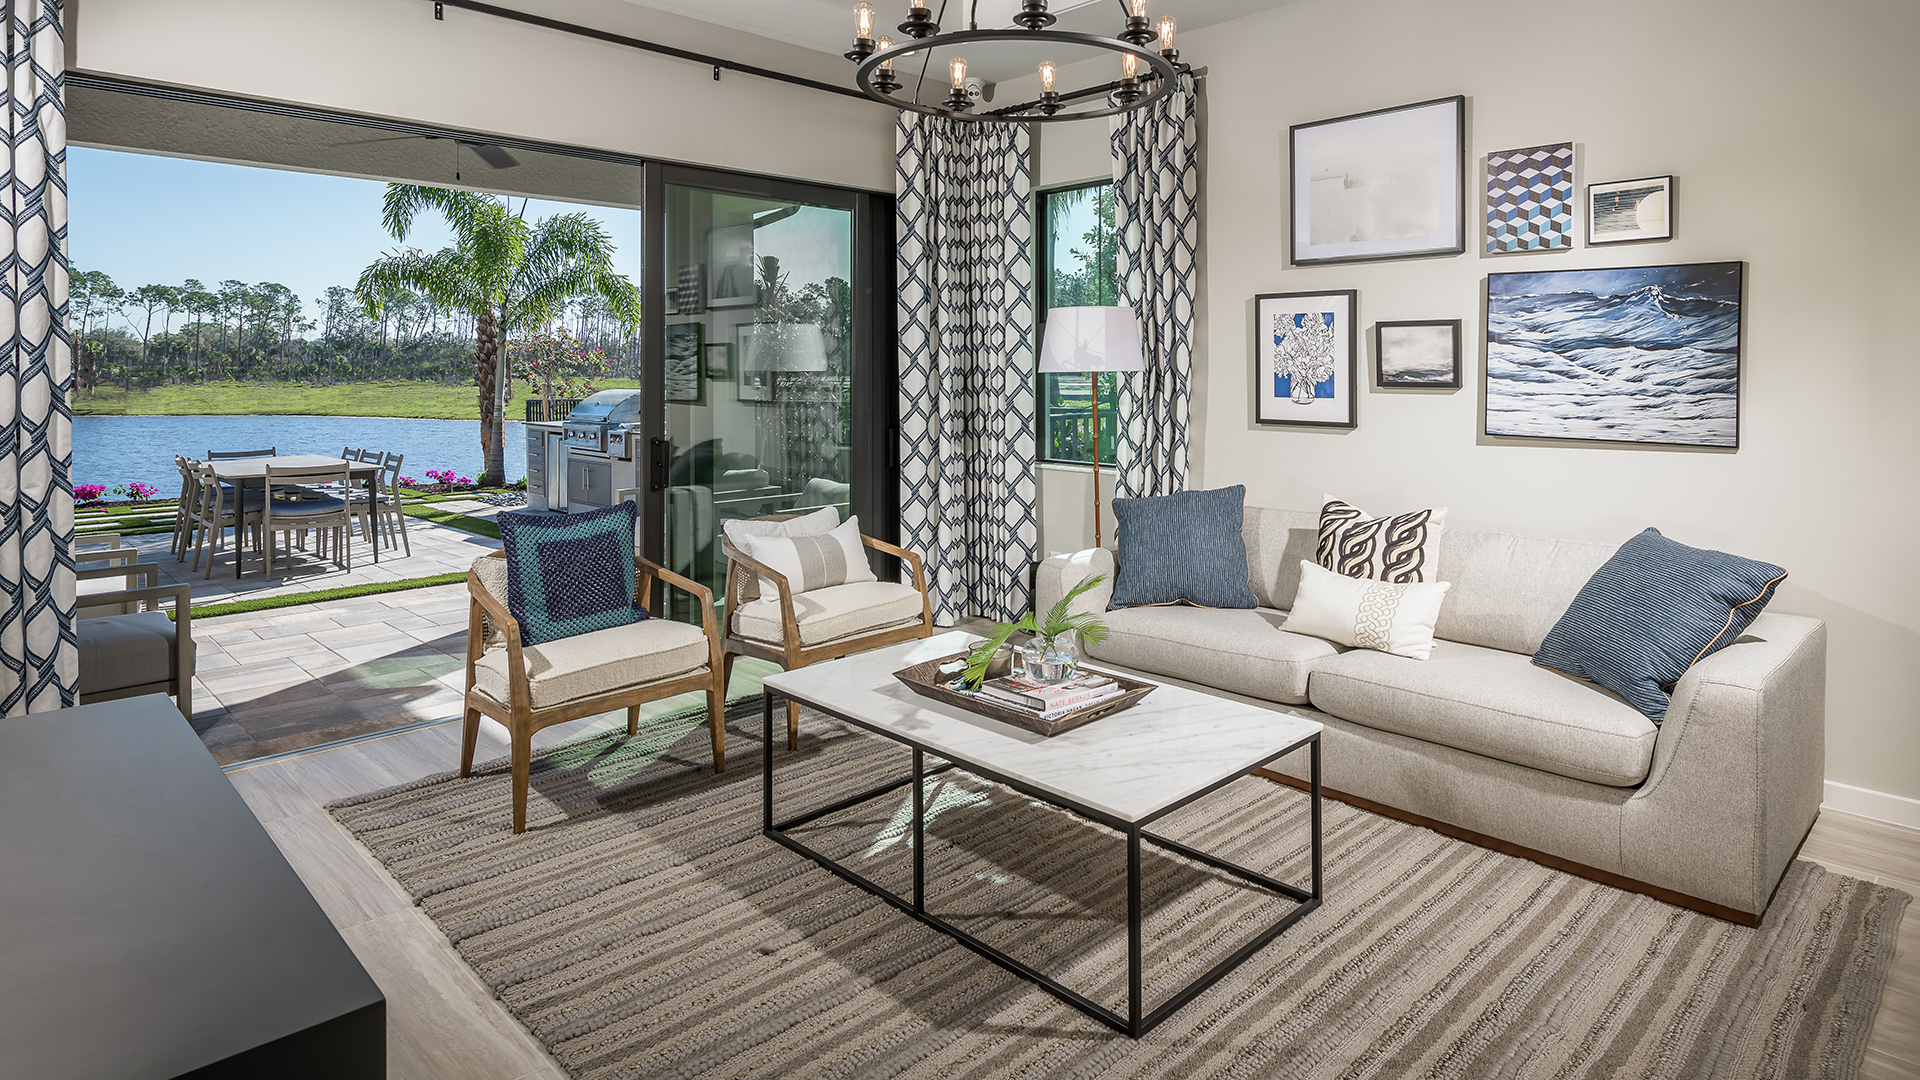 Indoor/outdoor living for easy entertaining